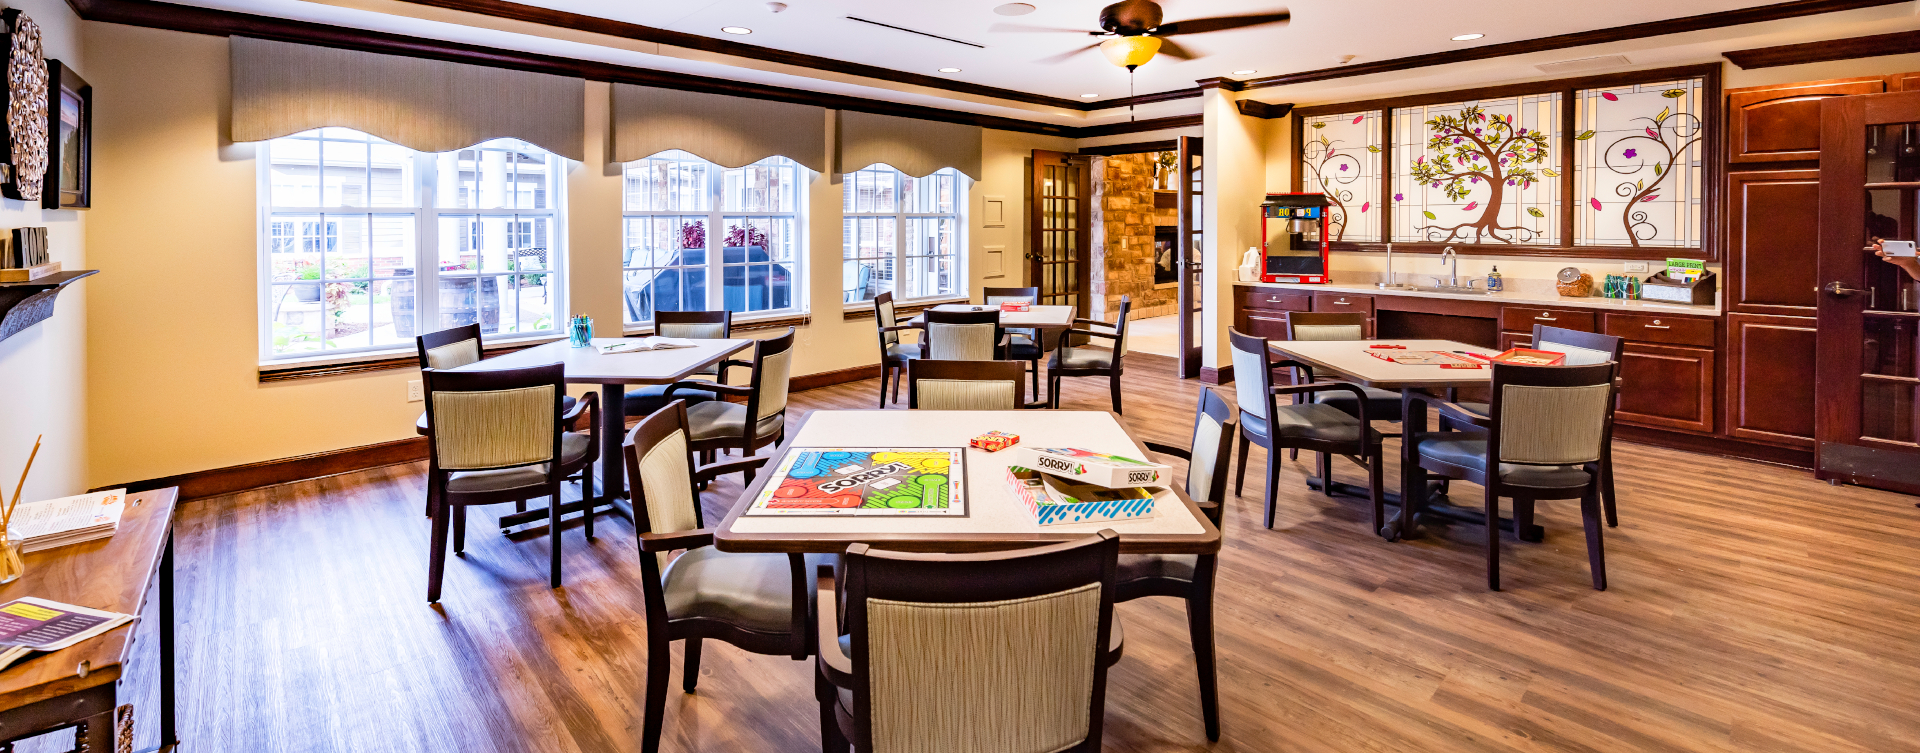 Enjoy a good card game with friends in the activity room at Bickford of Shelby Township